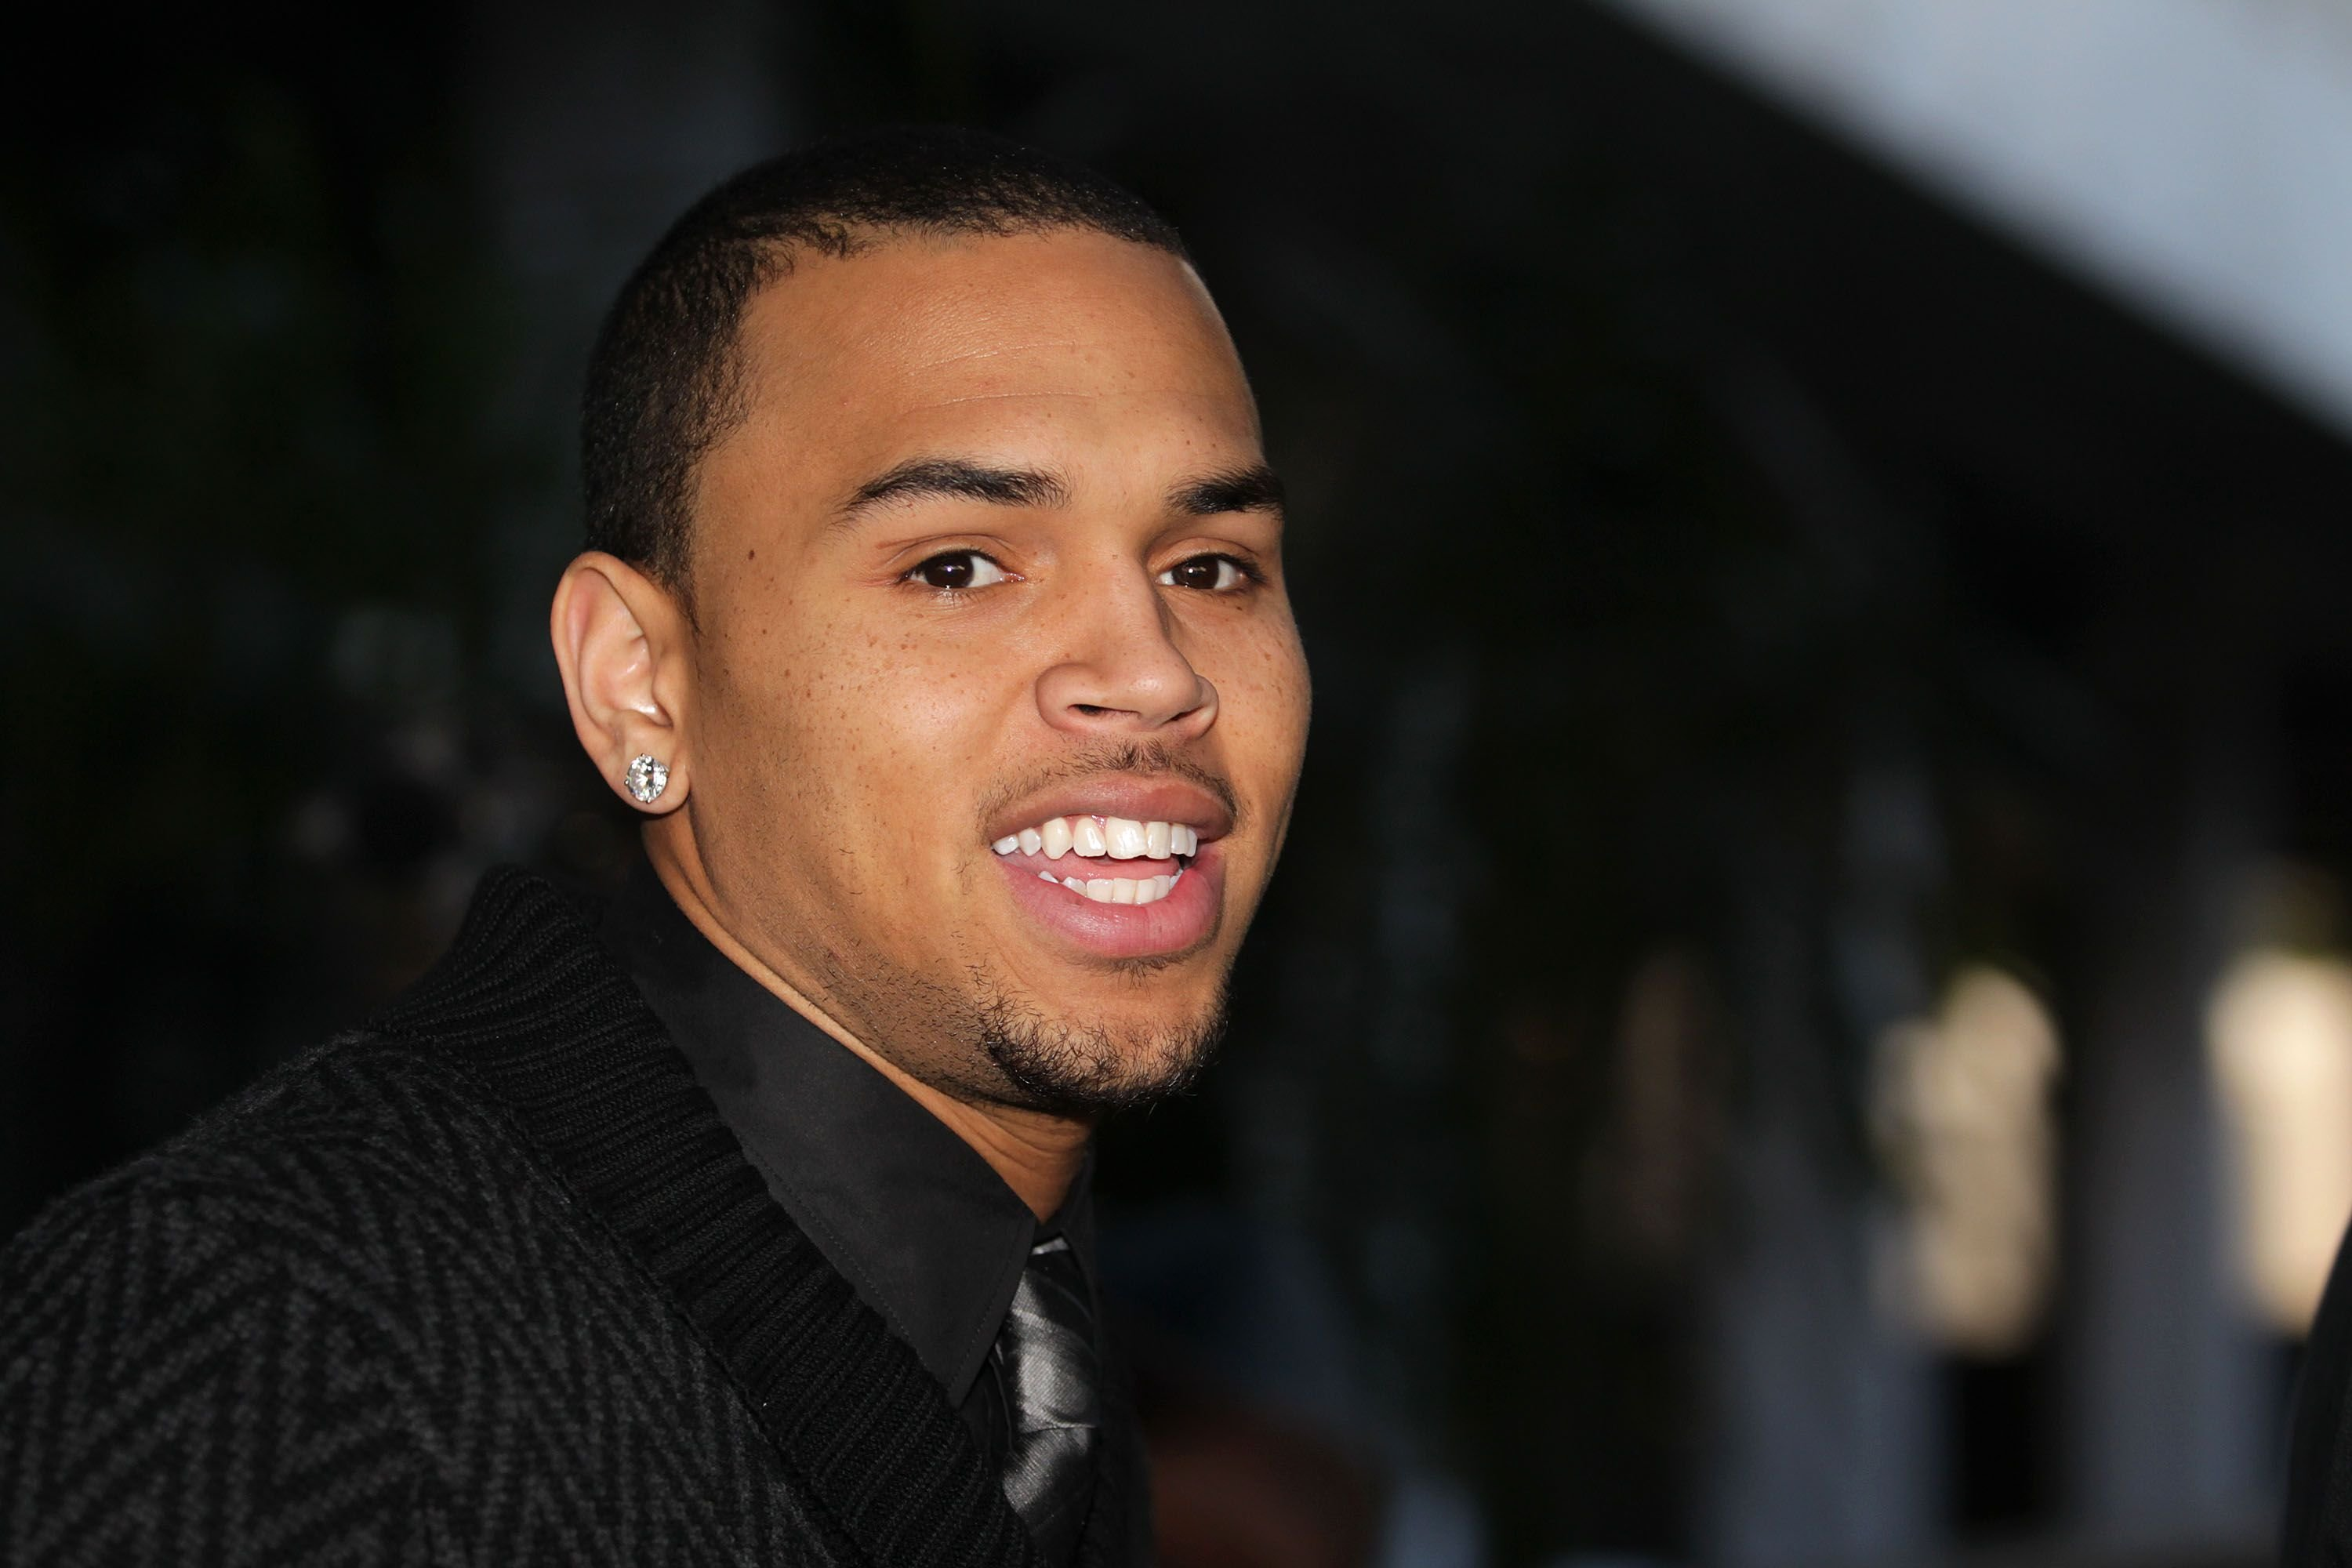 Chris Brown leaves the Los Angeles courthouse after a probation progress hearing on January 28, 2011. | Photo: Getty Images